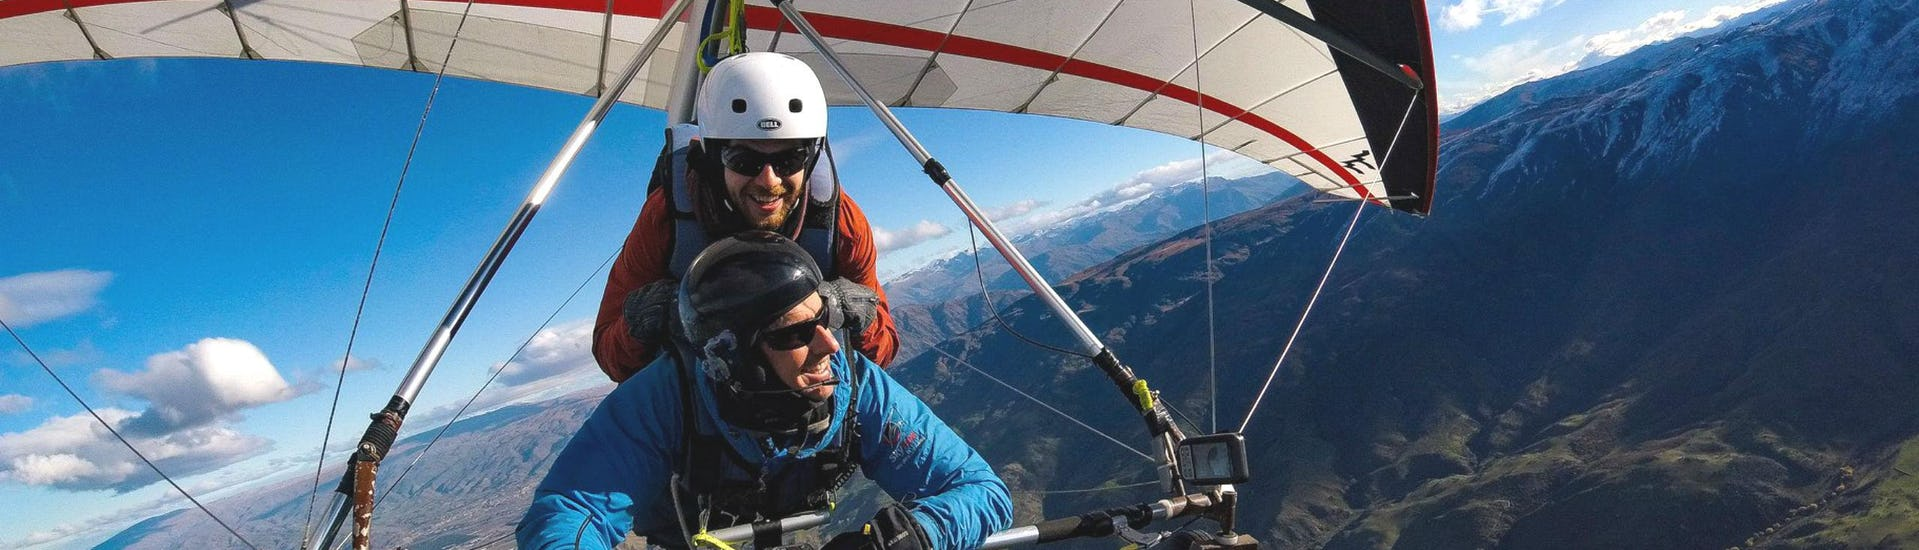 A hang gliding instructor from Skytrek Queenstown and his passenger are enjoying a scenic flight over the beautiful landscape close to Queenstown, New Zealand.